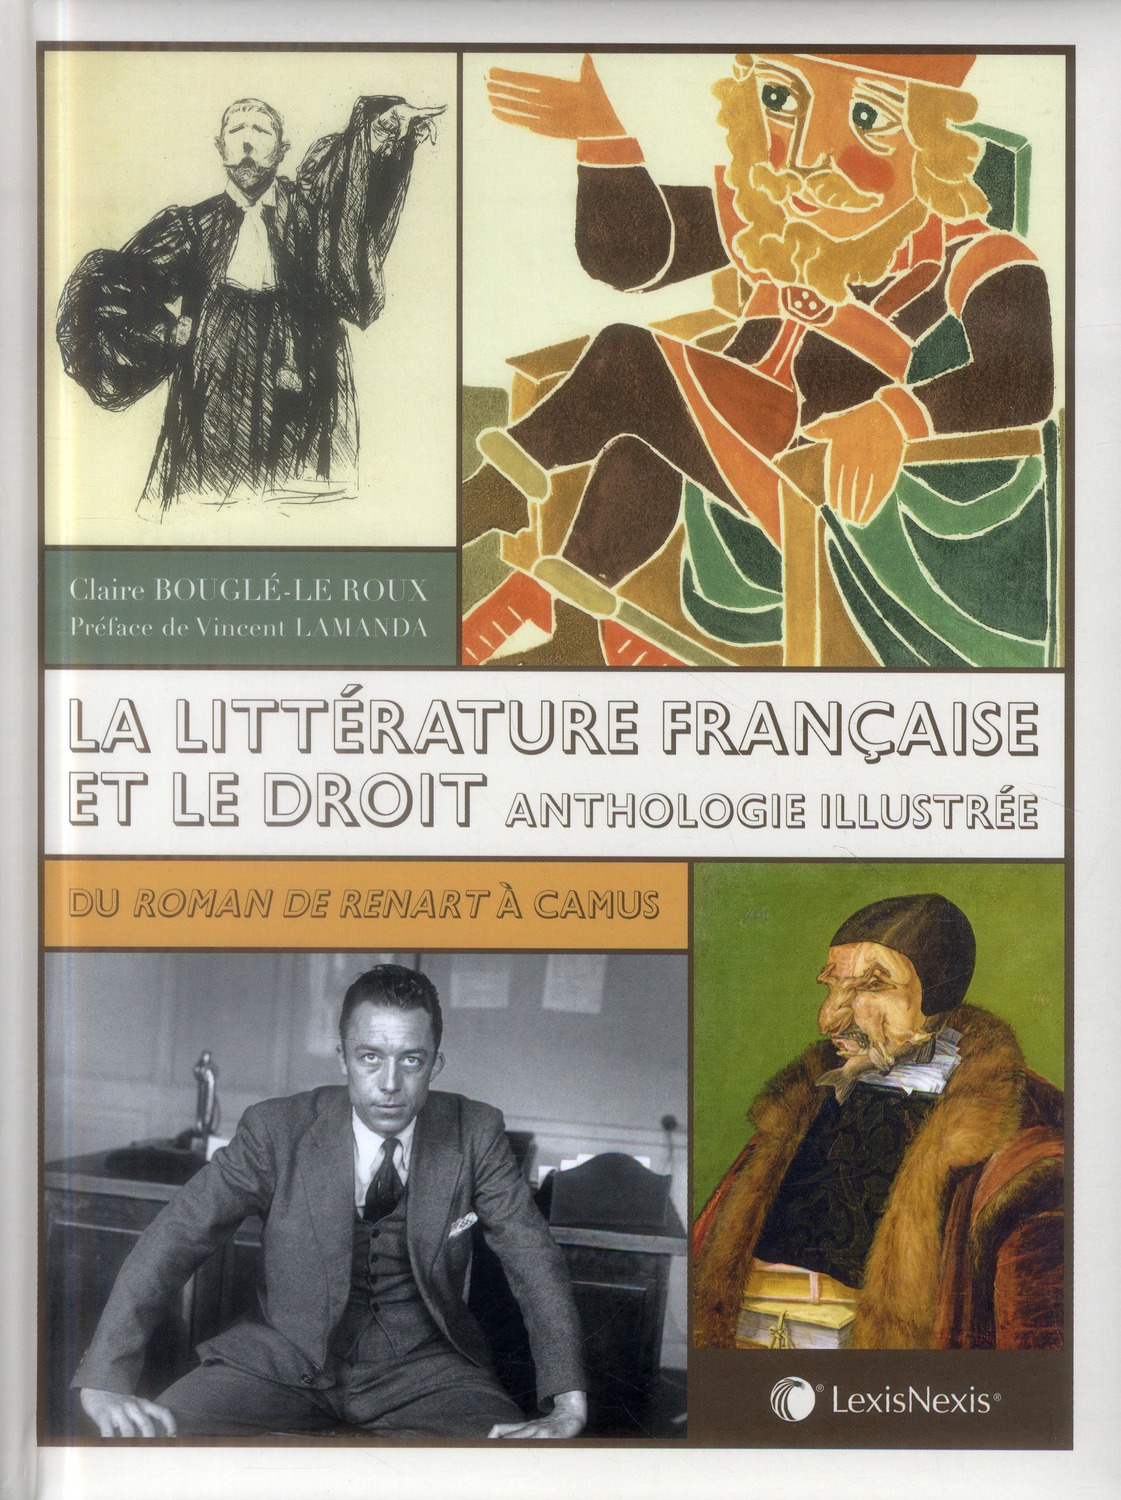 LA LITTERATURE FRANCAISE ET LE DROIT : ANTHOLOGIE ILLUSTREE - DU ROMAN DE RENART A CAMUS.